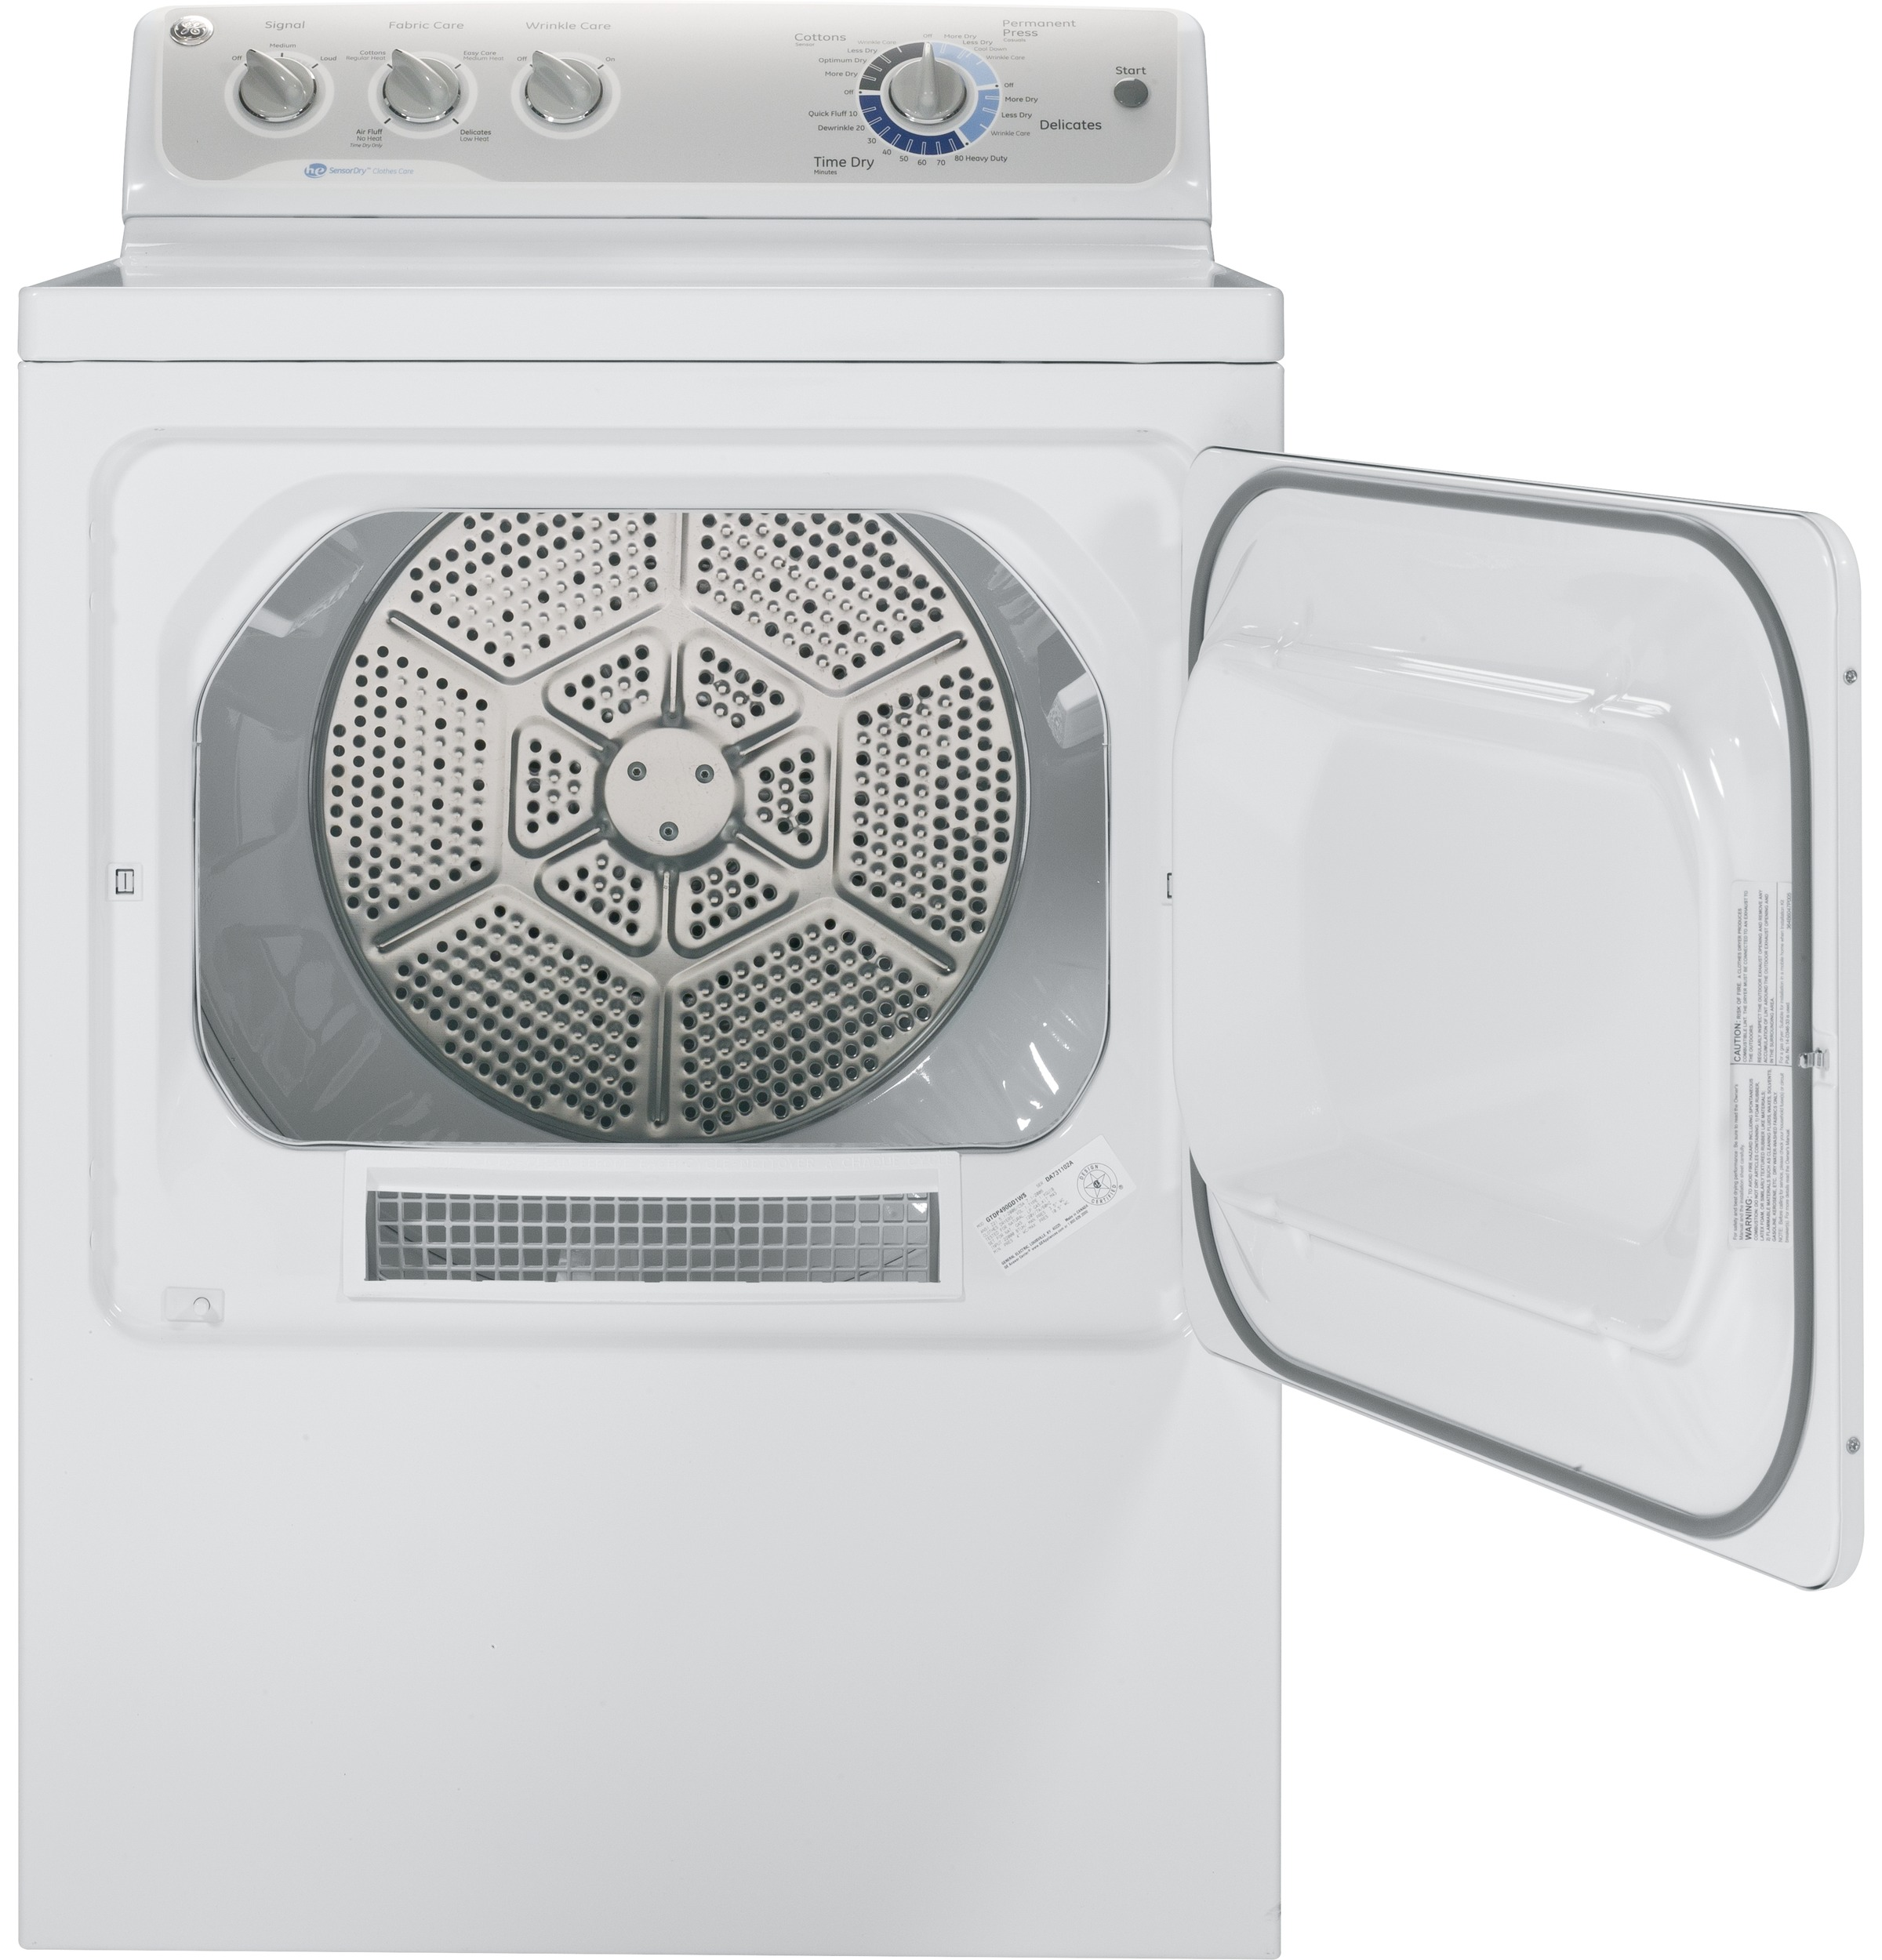 GE Appliances 7.0 cu. ft. Gas Dryer - White